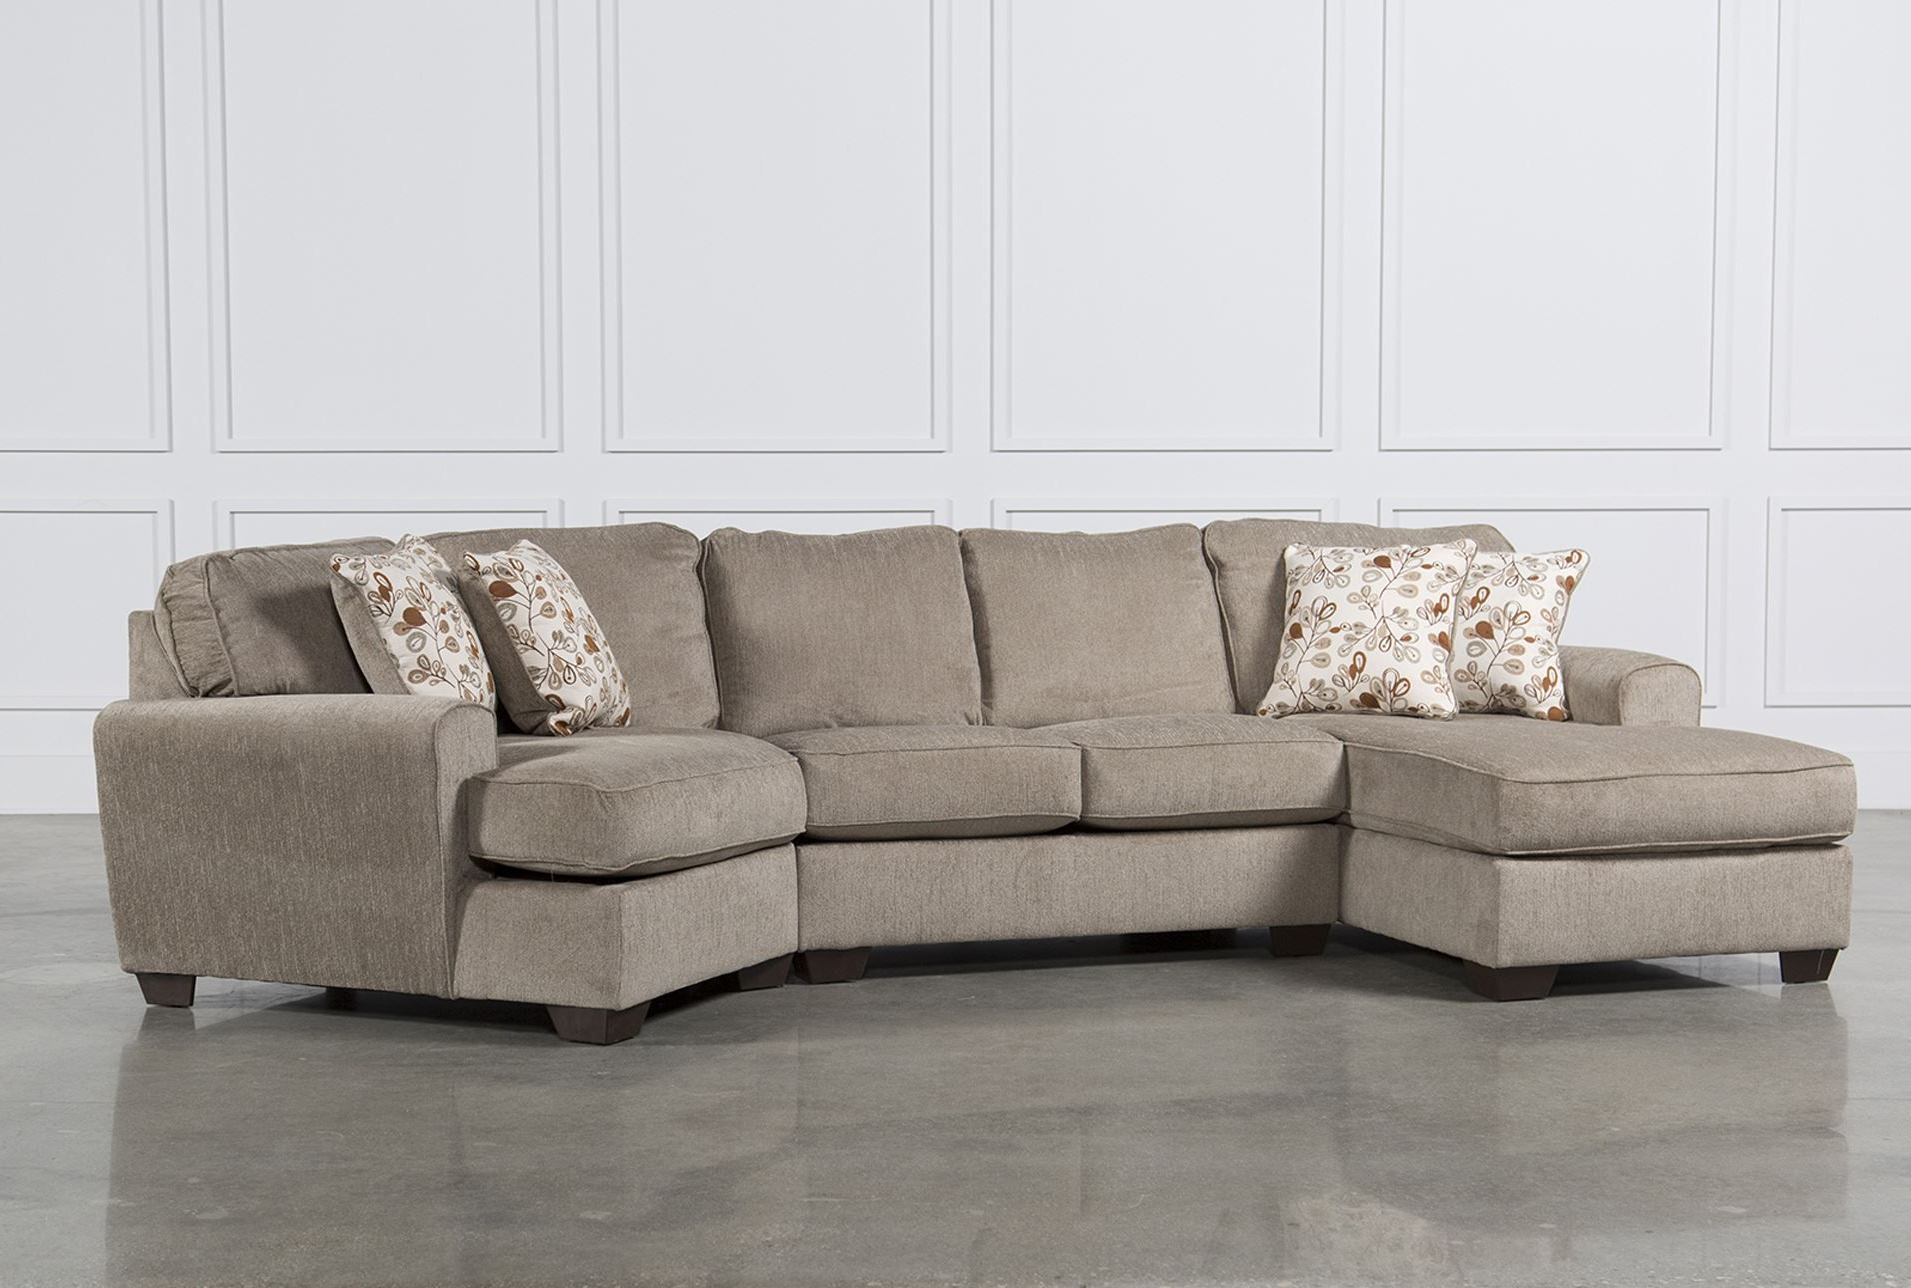 2019 2pc Maddox Right Arm Facing Sectional Sofas With Chaise Brown Throughout Cuddler Sectional Sofa Carena 2 Pc Fabric Sectional Sofa (View 3 of 20)